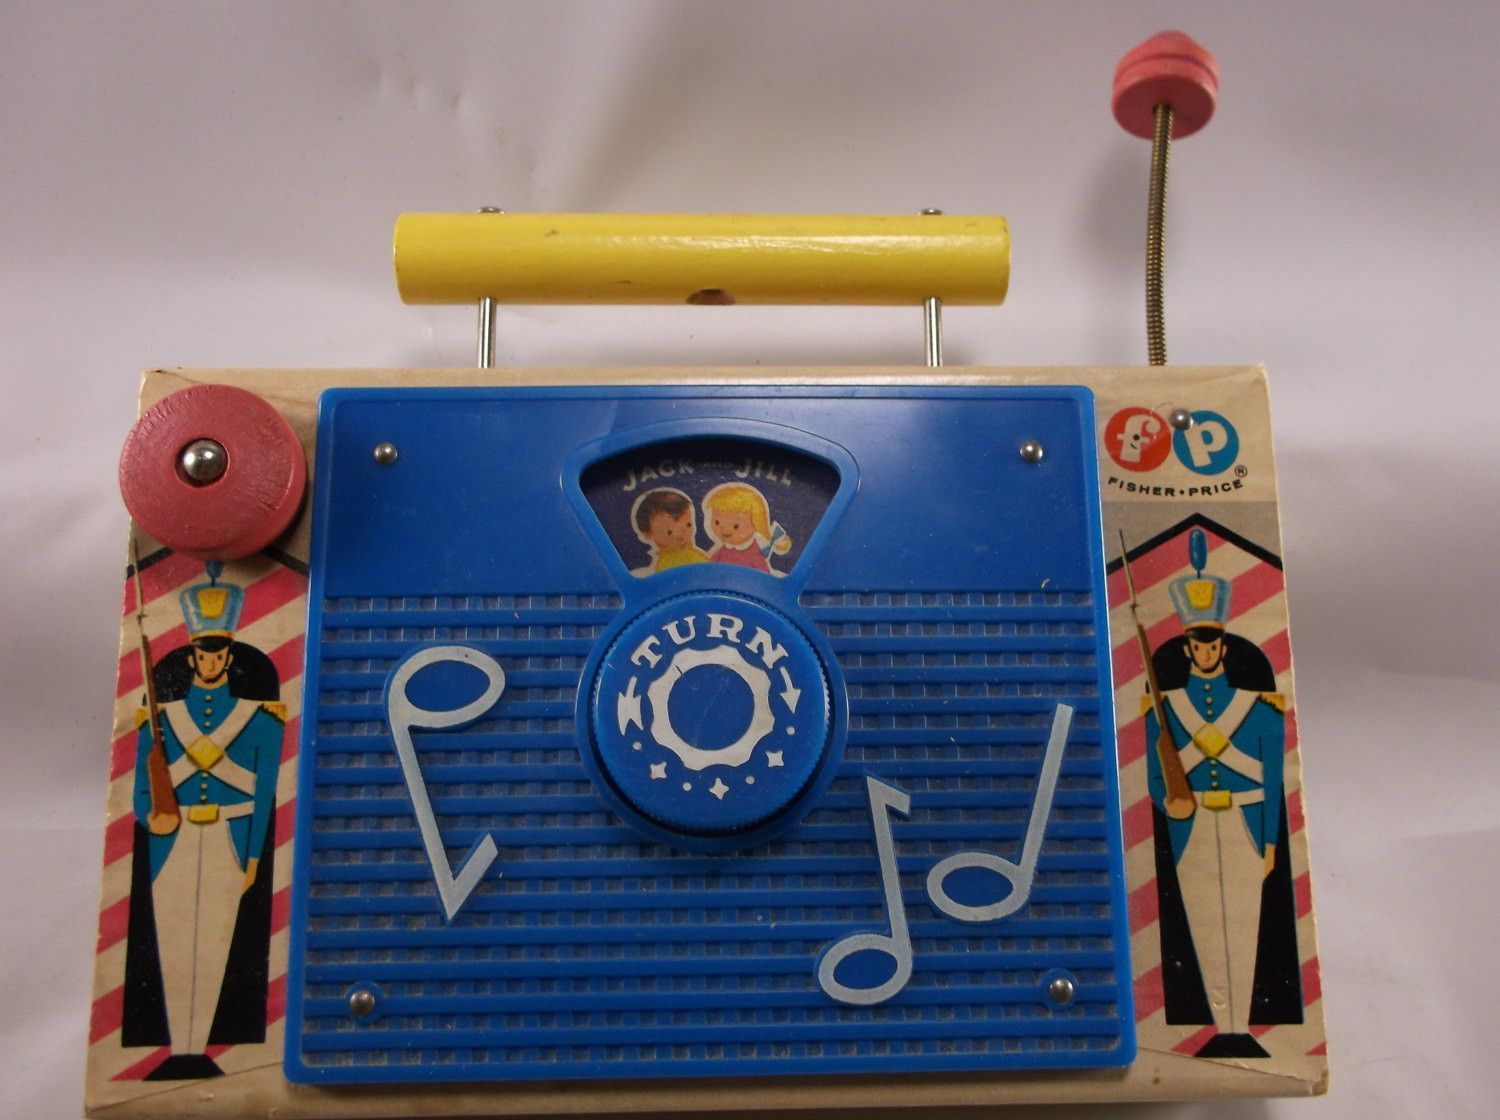 1960 toys images  Vintage Old Toy Jack And Jill TV Radio  Fisher Price